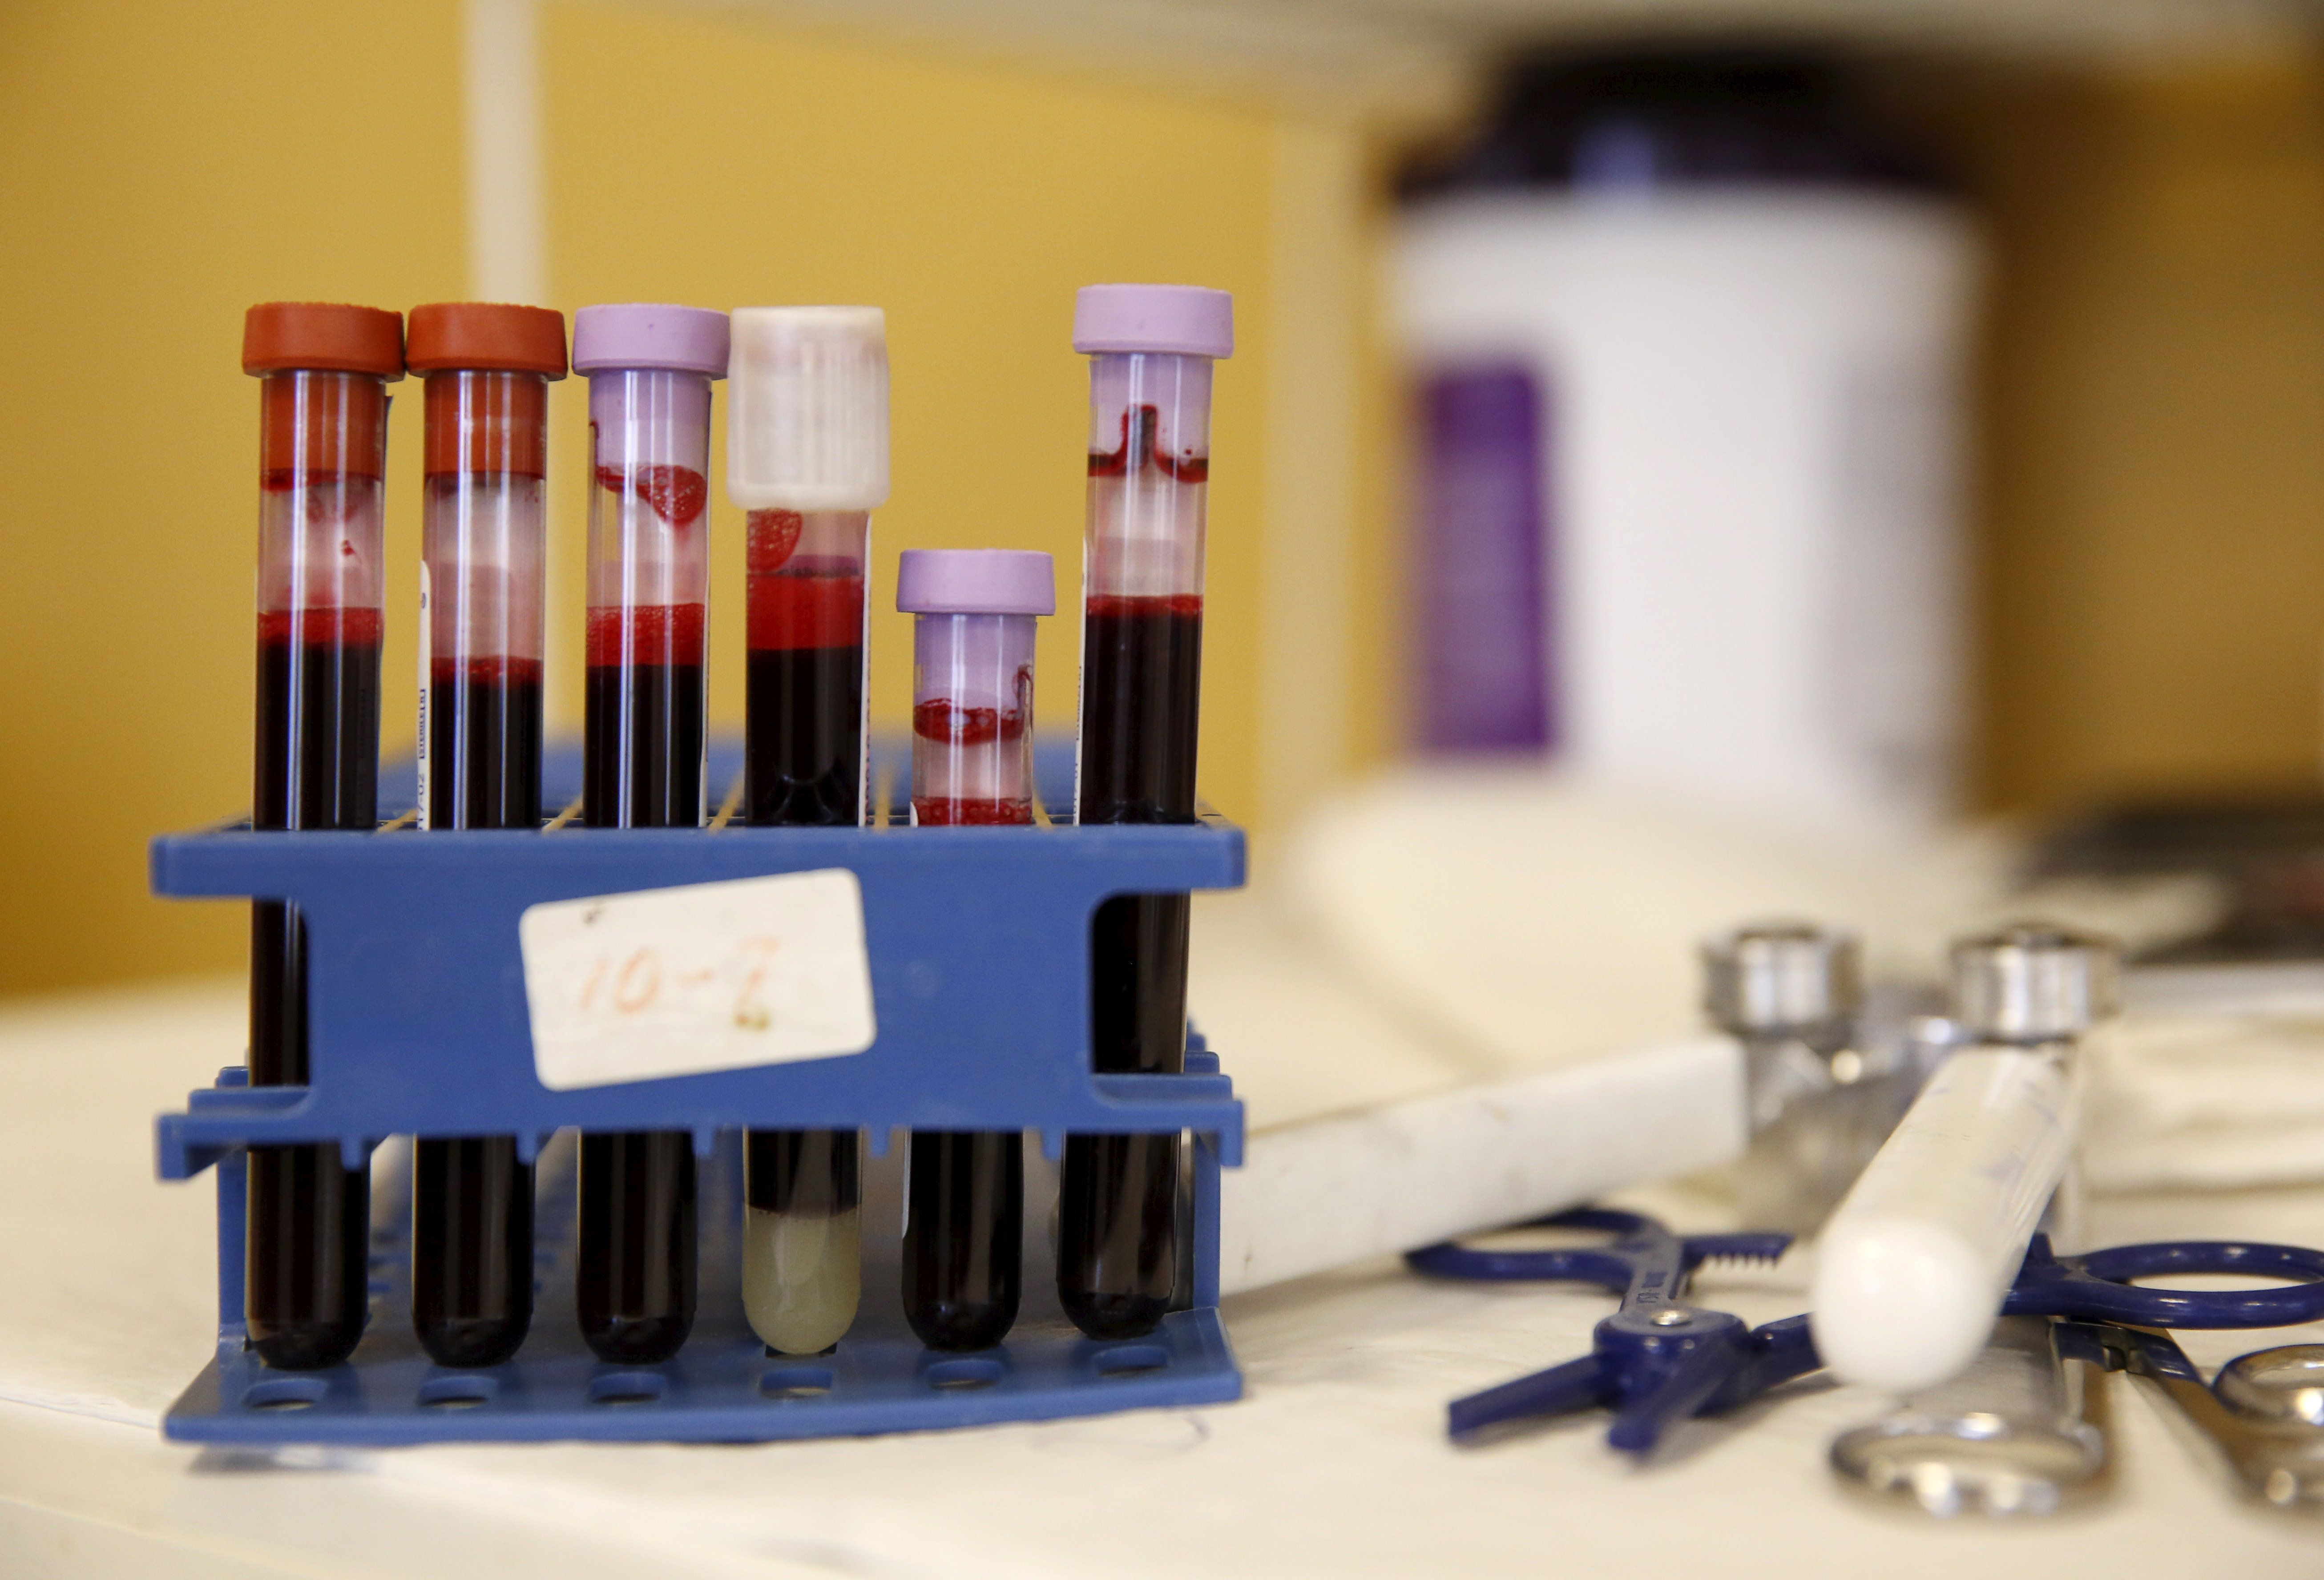 Testing tubes full of blood are seen at the American Red Cross Charles Drew Donation Center in Washington February 16, 2016. To match HEALTH-ZIKA/BLOOD    REUTERS/Gary Cameron